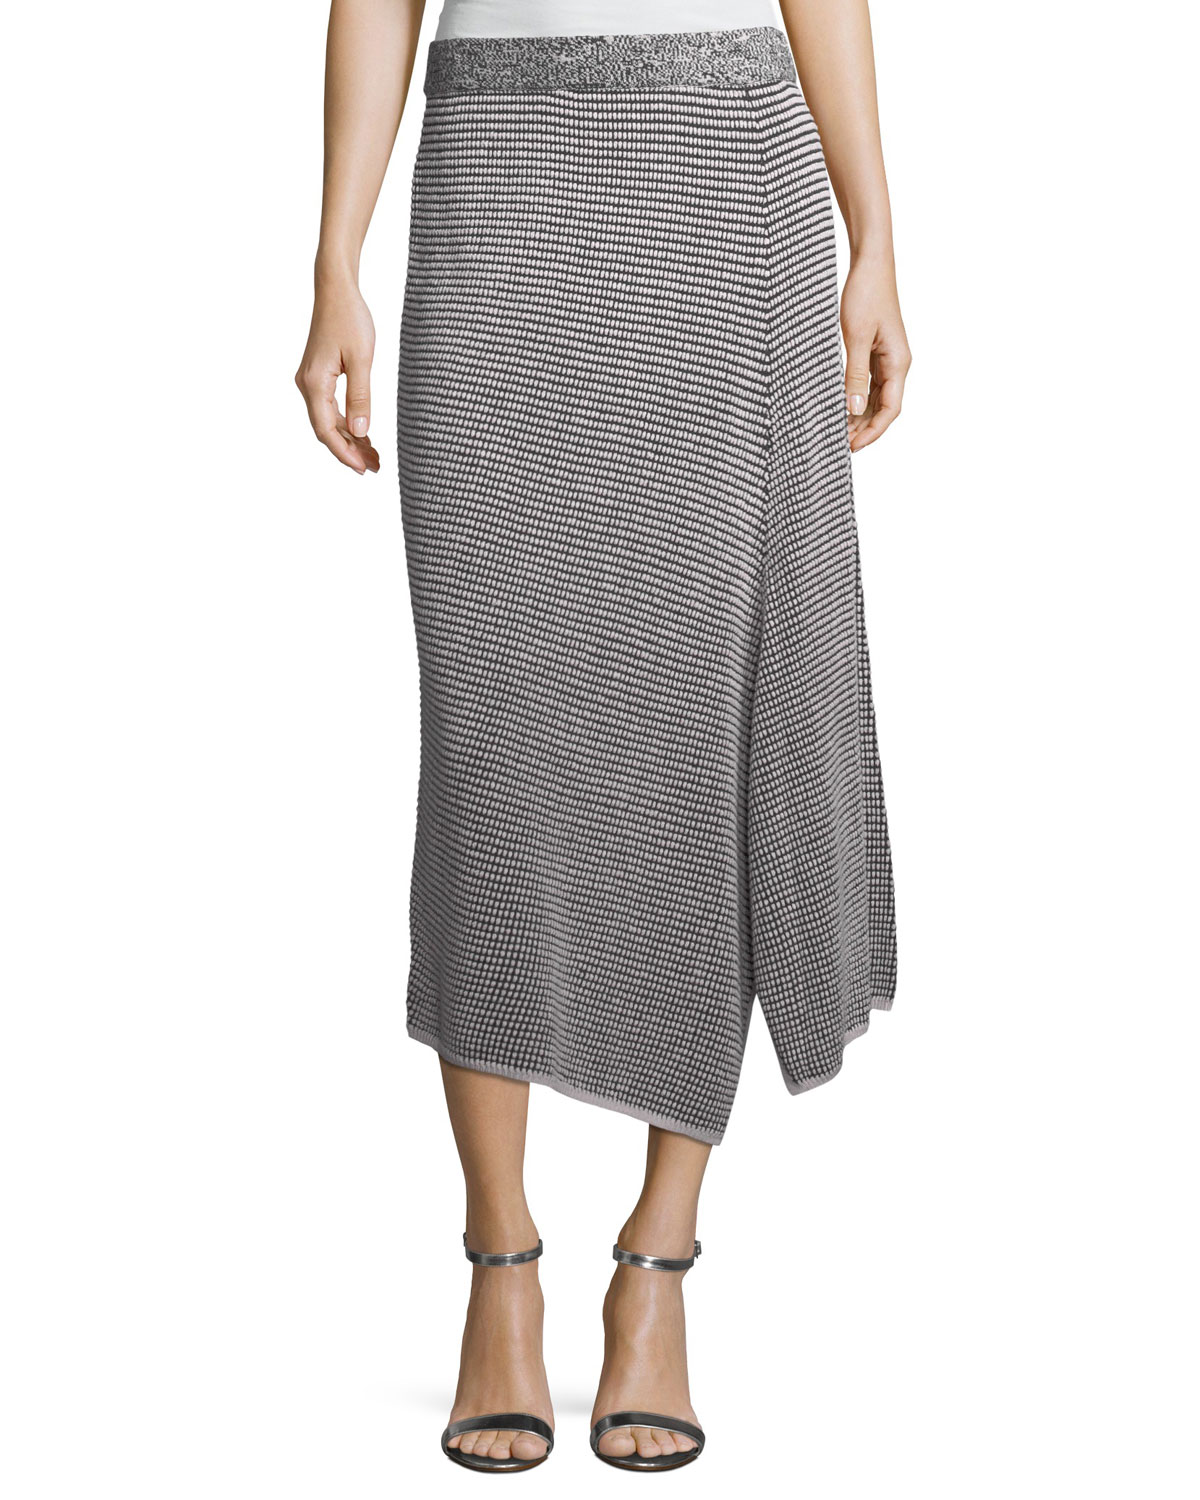 Frosted Fall Asymmetric Skirt, Petite